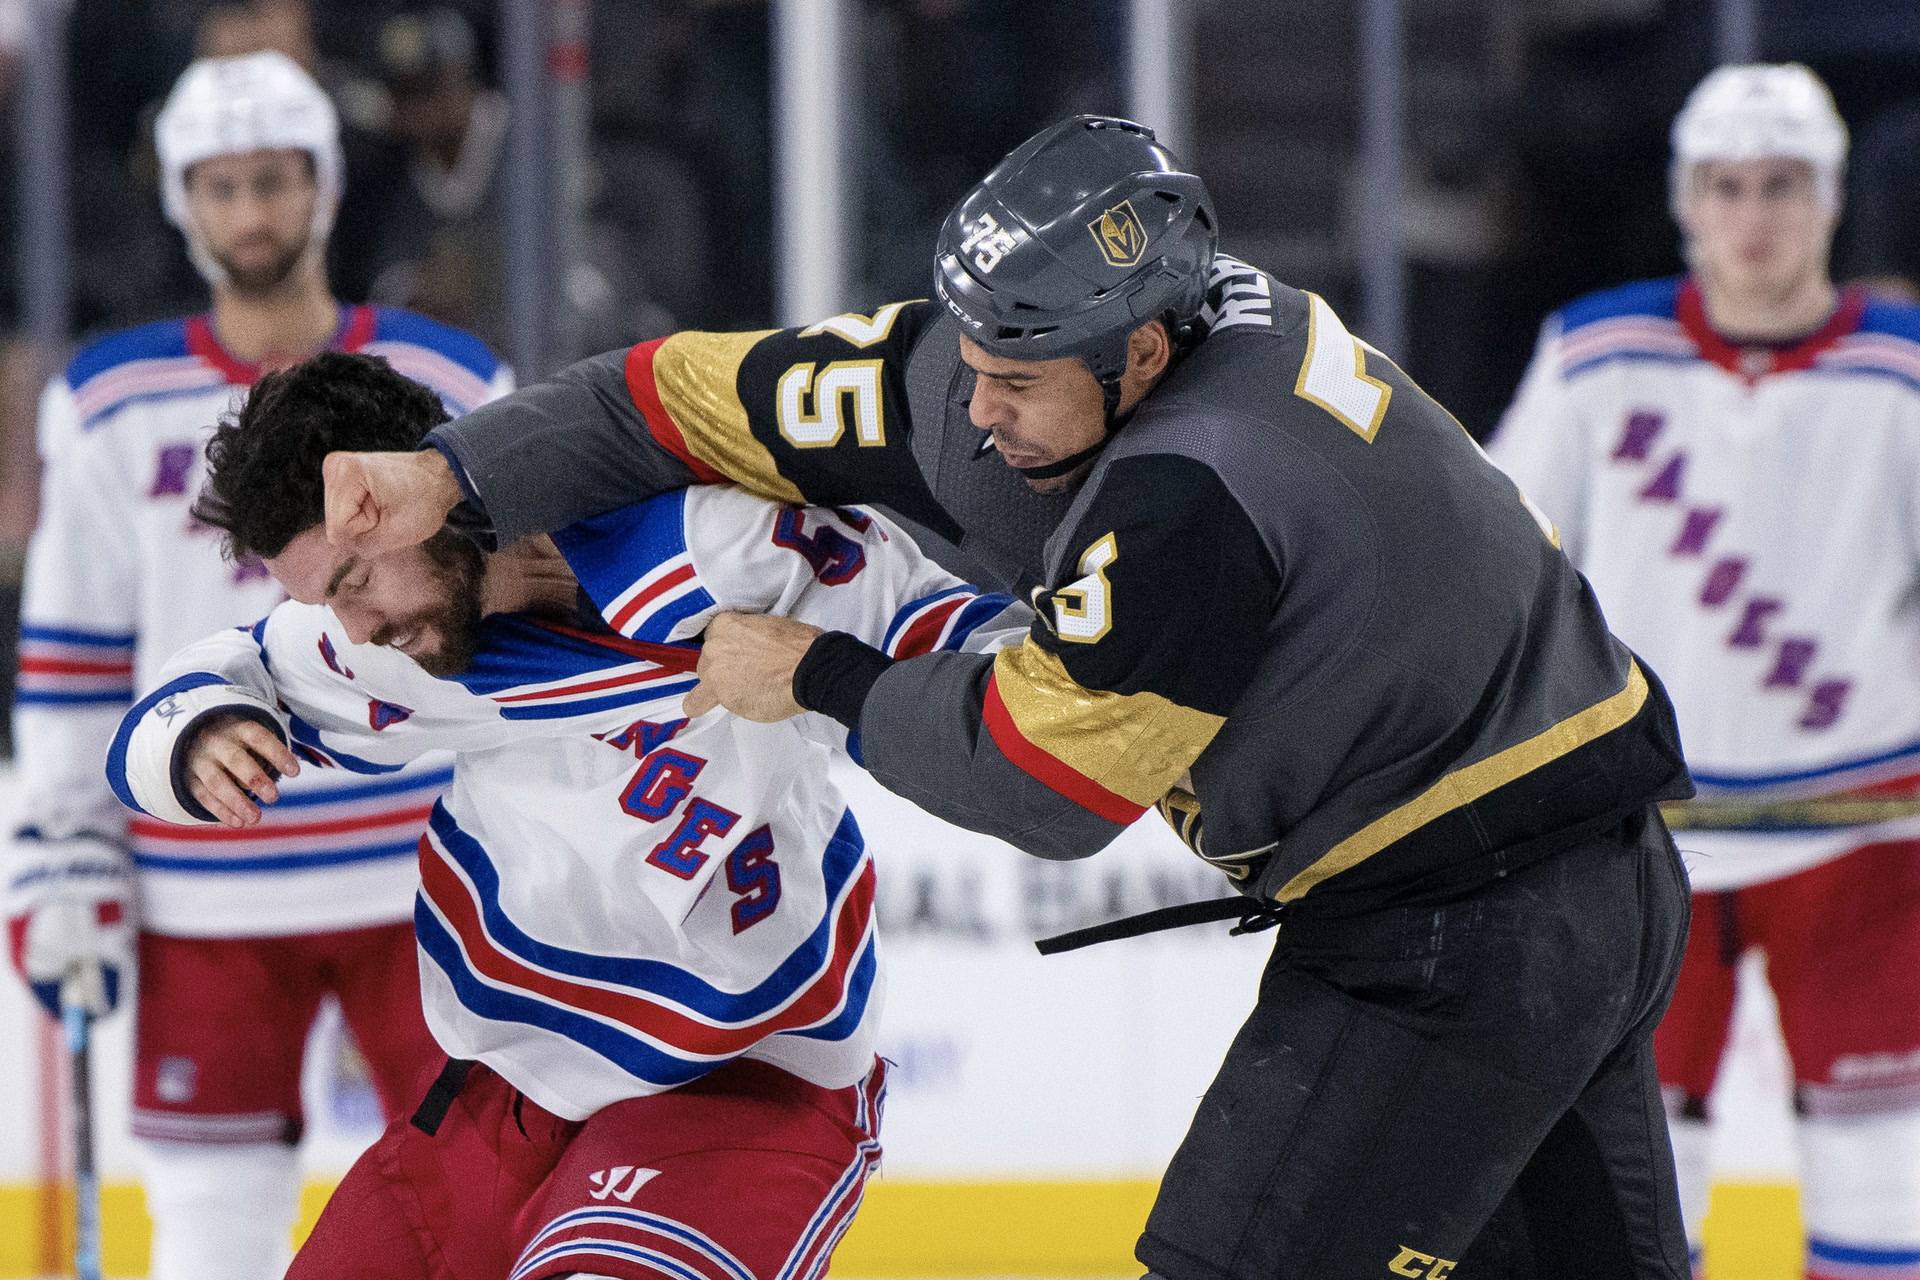 dd4a2677422 Golden Knights' Ryan Reaves perfects the craft of fighting | Las Vegas  Review-Journal